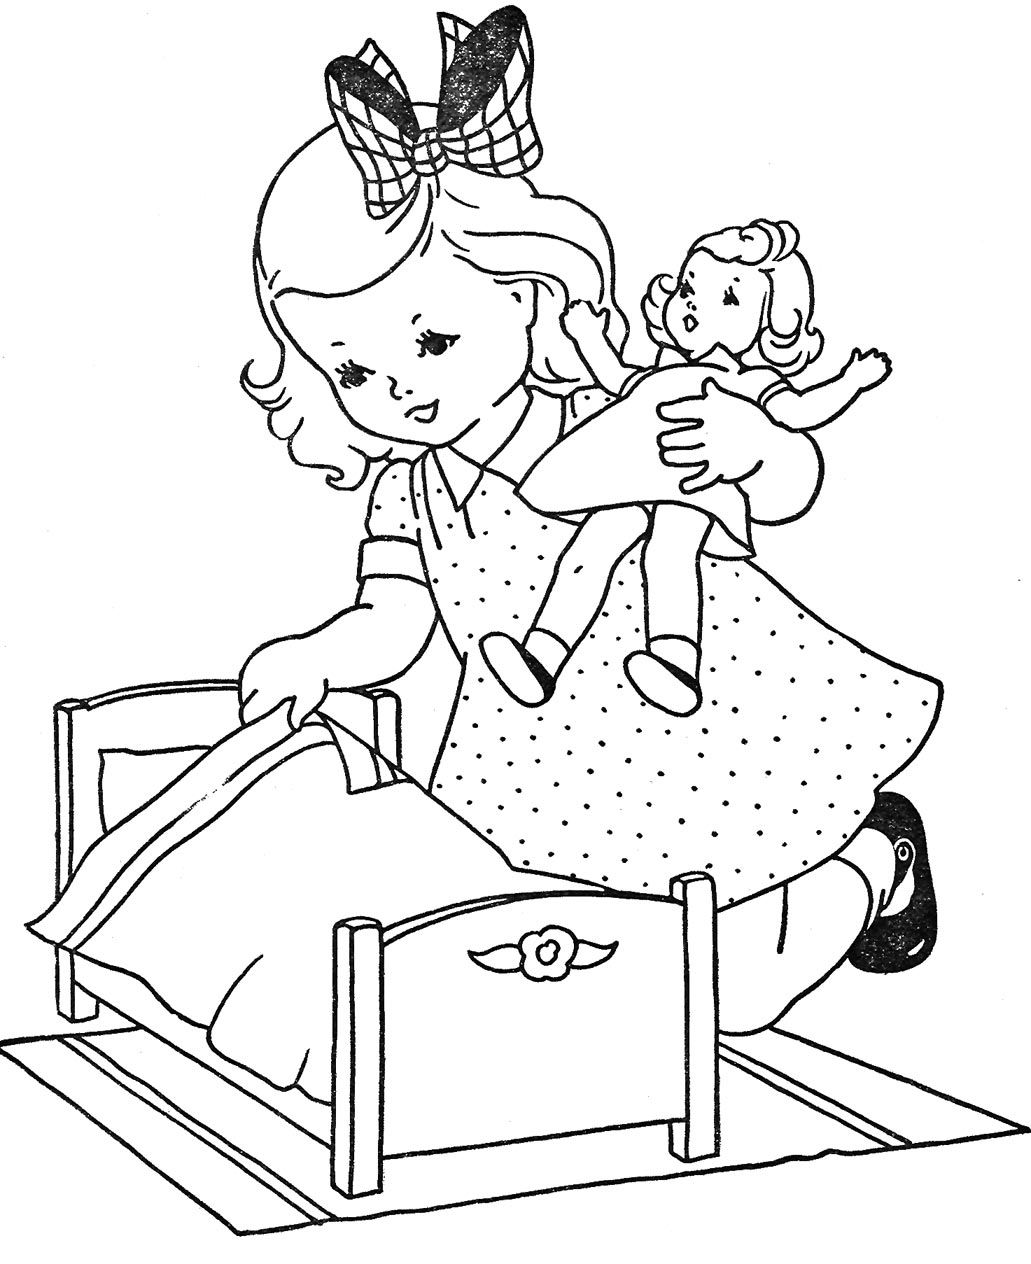 colour in pictures for girls supergirl coloring pages best coloring pages for kids colour girls pictures in for